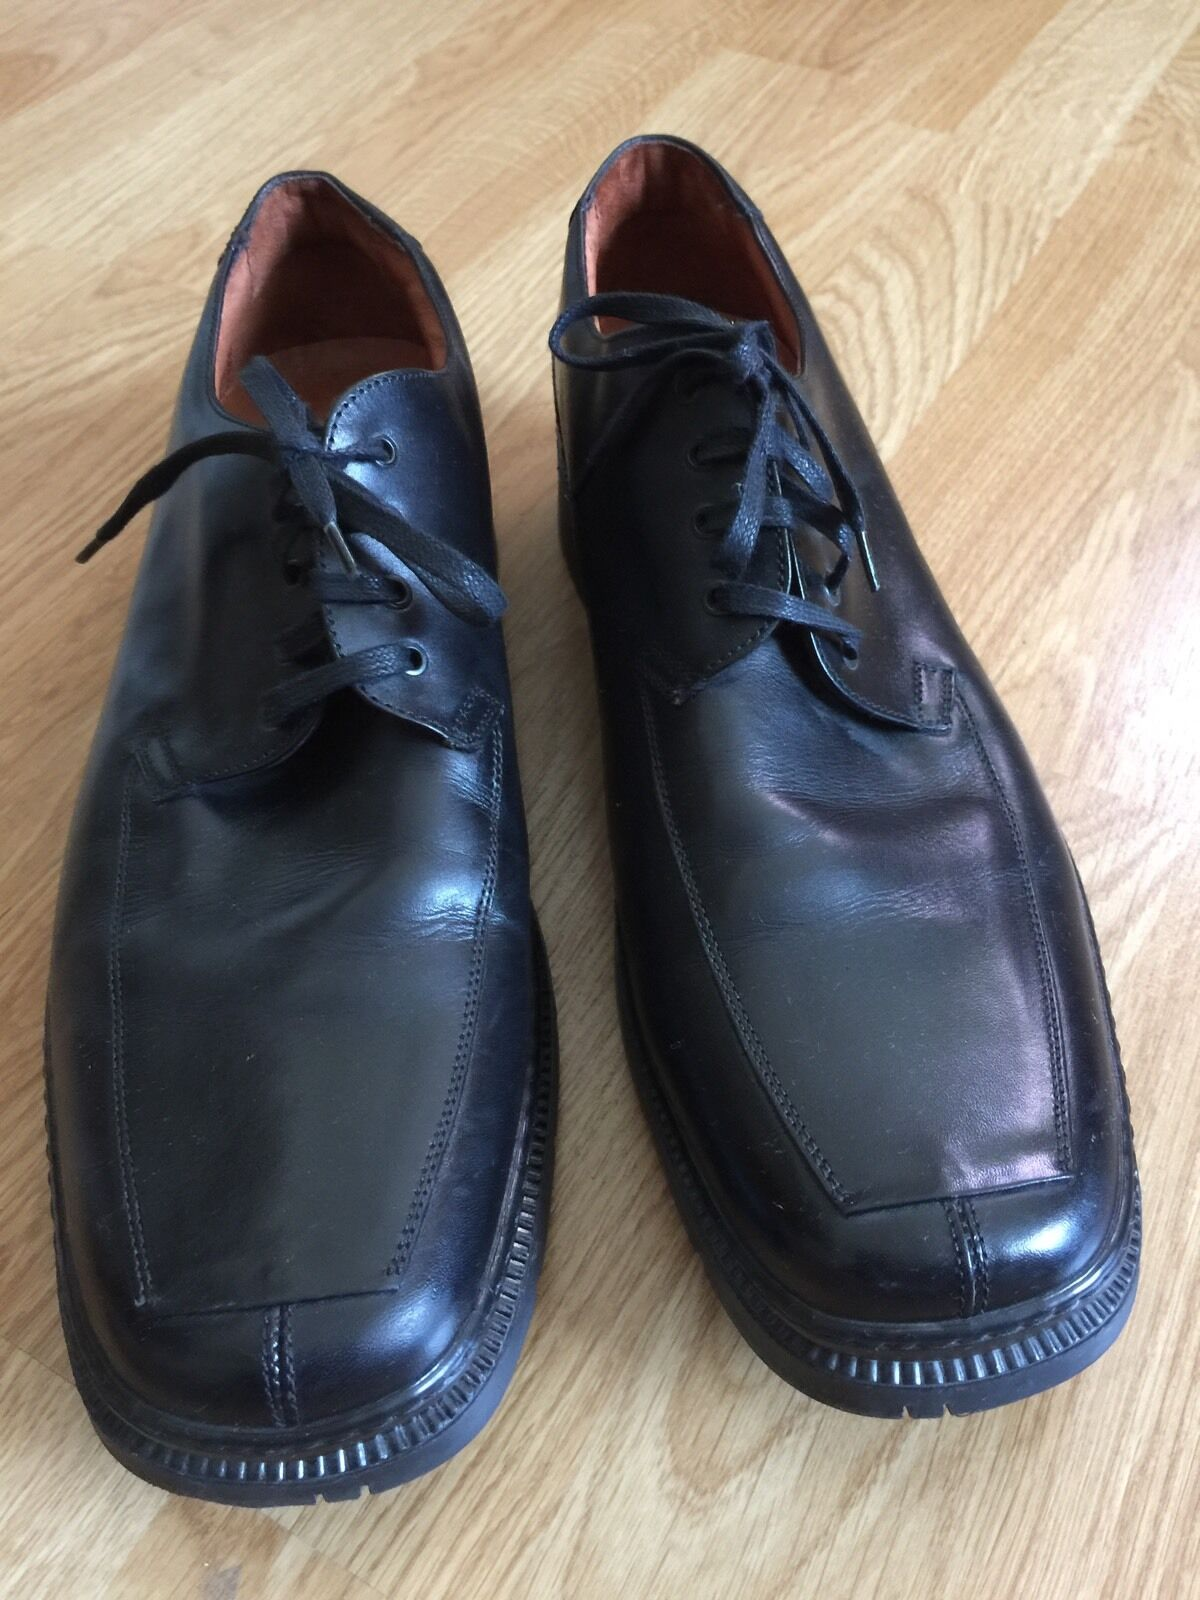 Johnston & Murphy Italy Men's 12M Black Leather Oxford Casual Dress Shoes